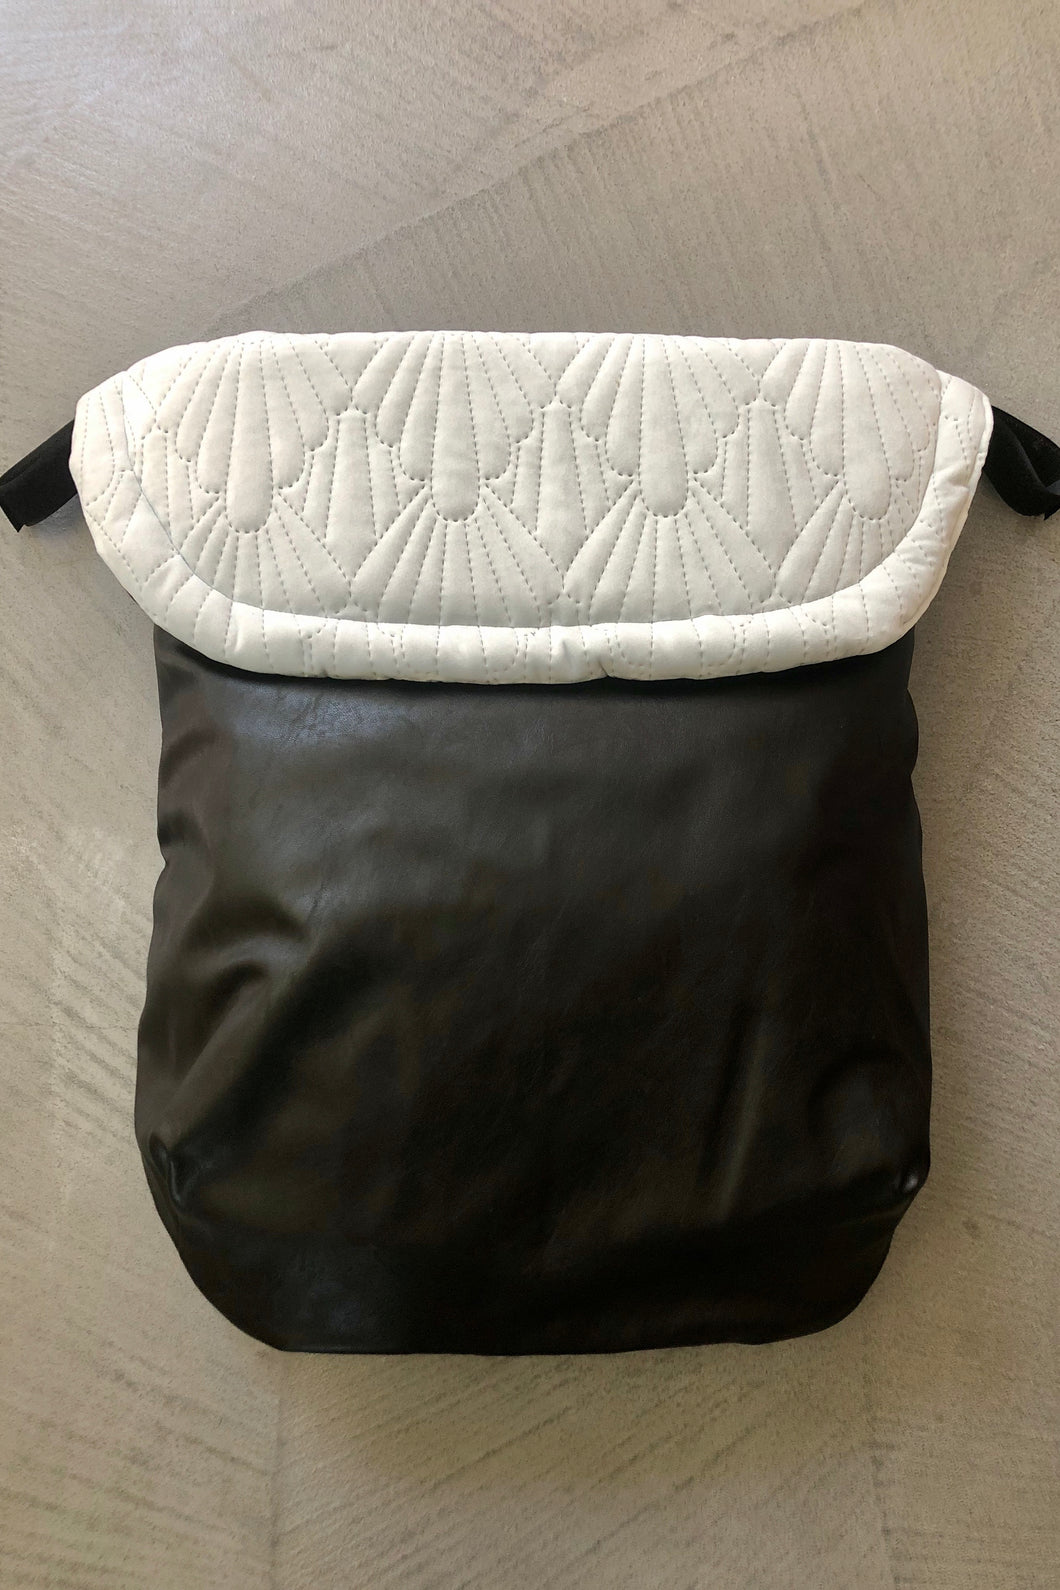 Weather resistant Footmuff- Black Faux Leather / Quilted Velvet Ice blue - Percy and Paige tiny traveller footmuff pram blanket best footmuffs universal footmuff australian made footmuffs warm and practical